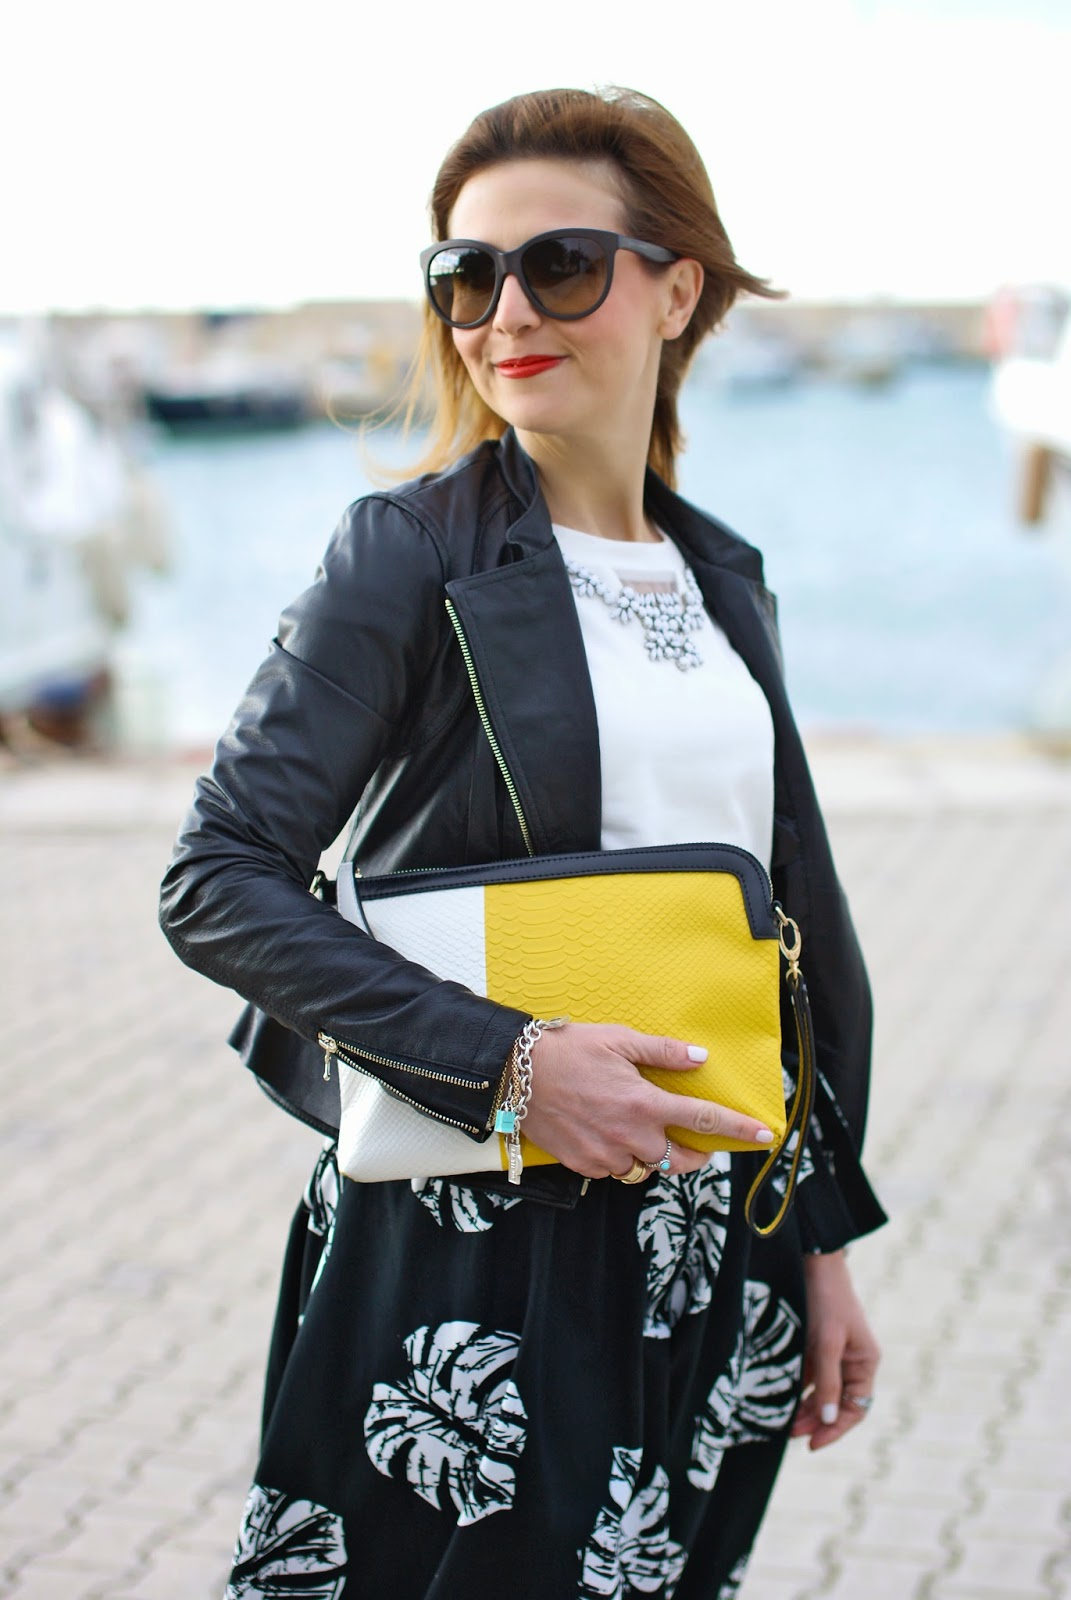 Giorgia & Johns felpa pietre e tulle, leather peplum jacket, palm leaf print skirt, Fashion and Cookies, fashion blogger